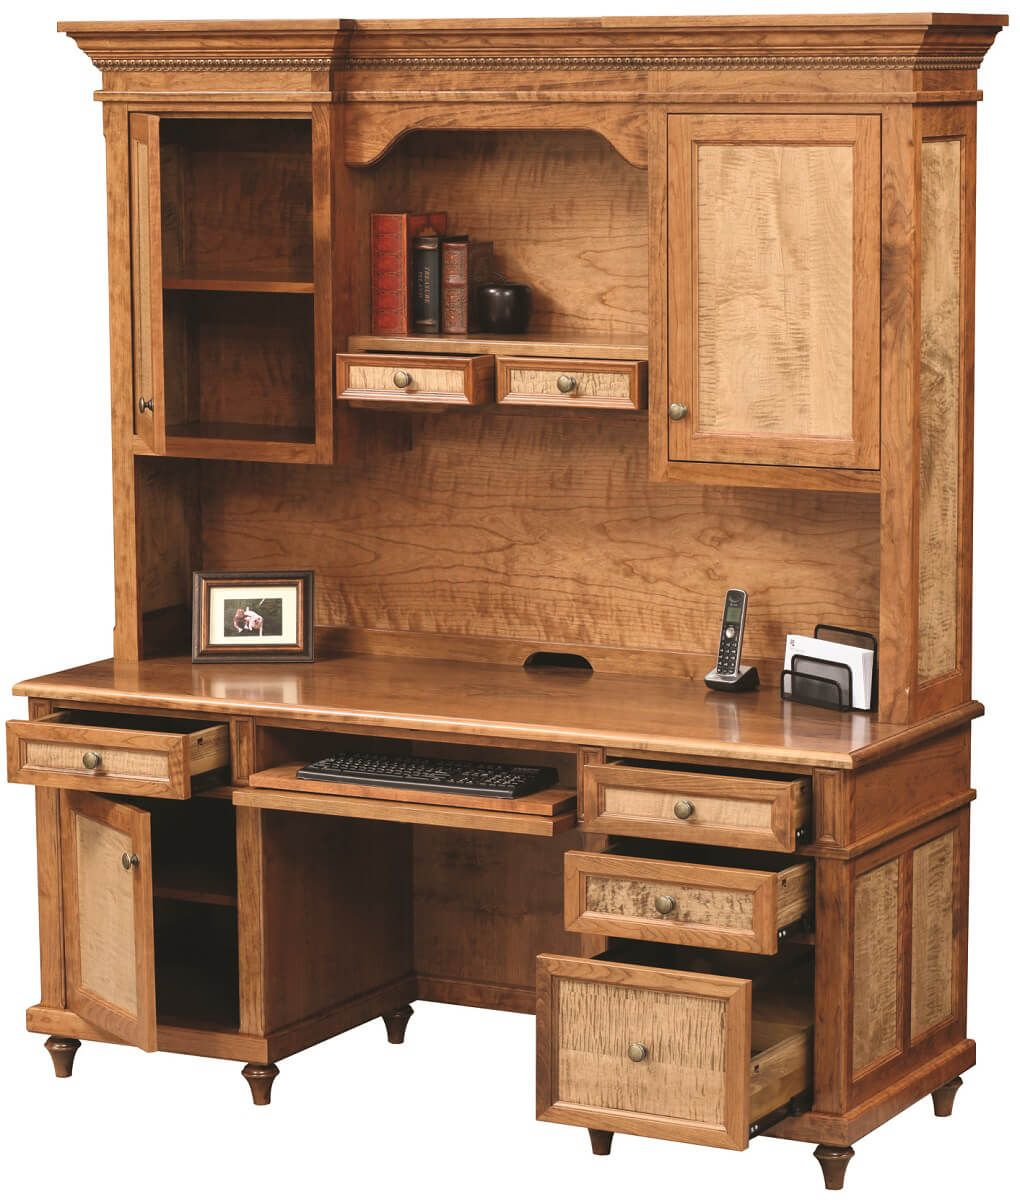 Shown in Cherry with Tiger Maple Panels